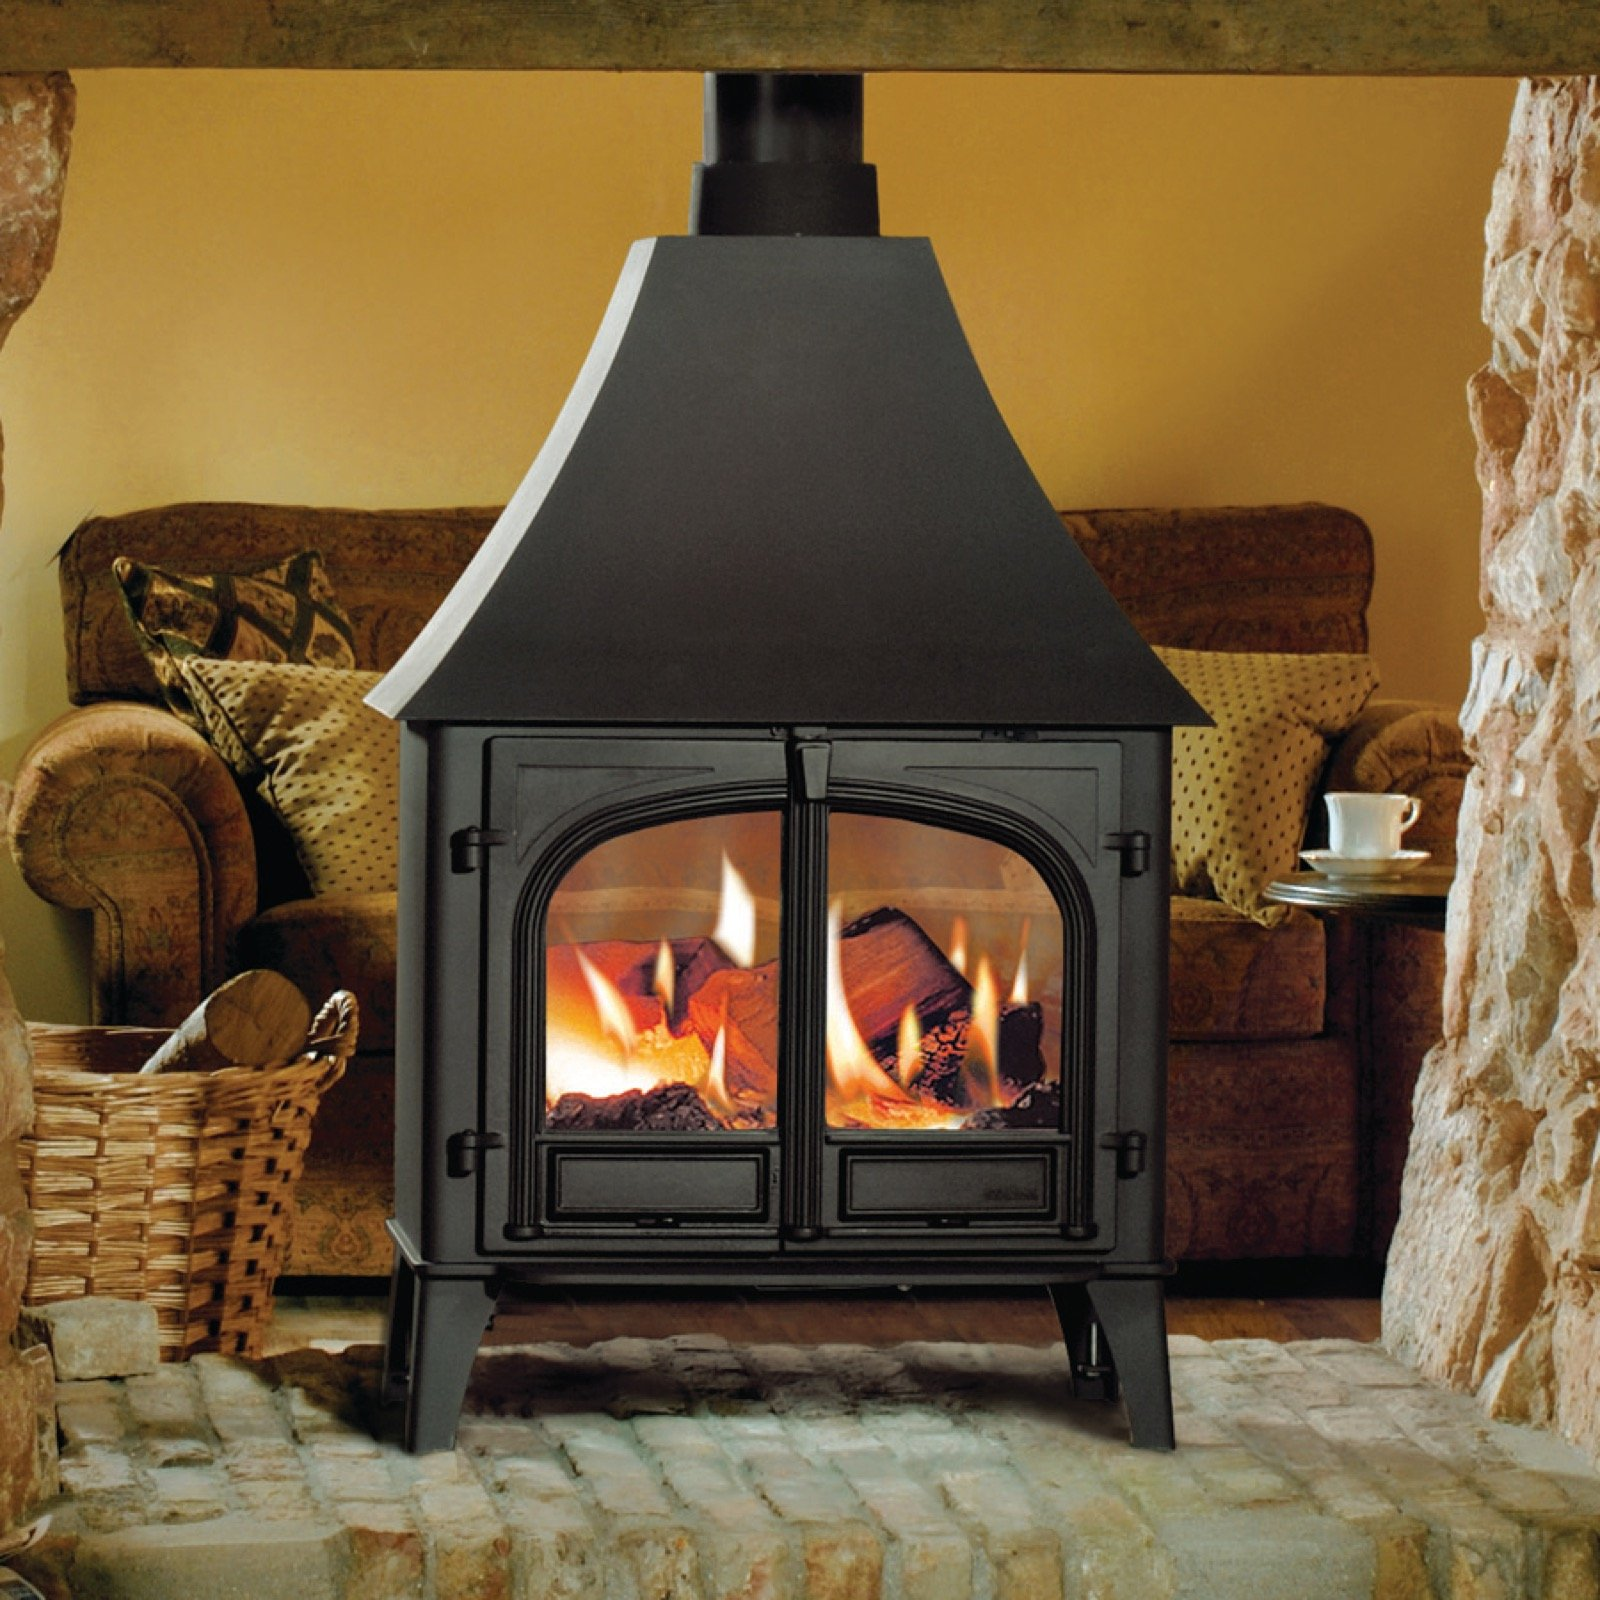 Stovax Stockton 11 Double Sided Wood Burning Stove With High Canopy